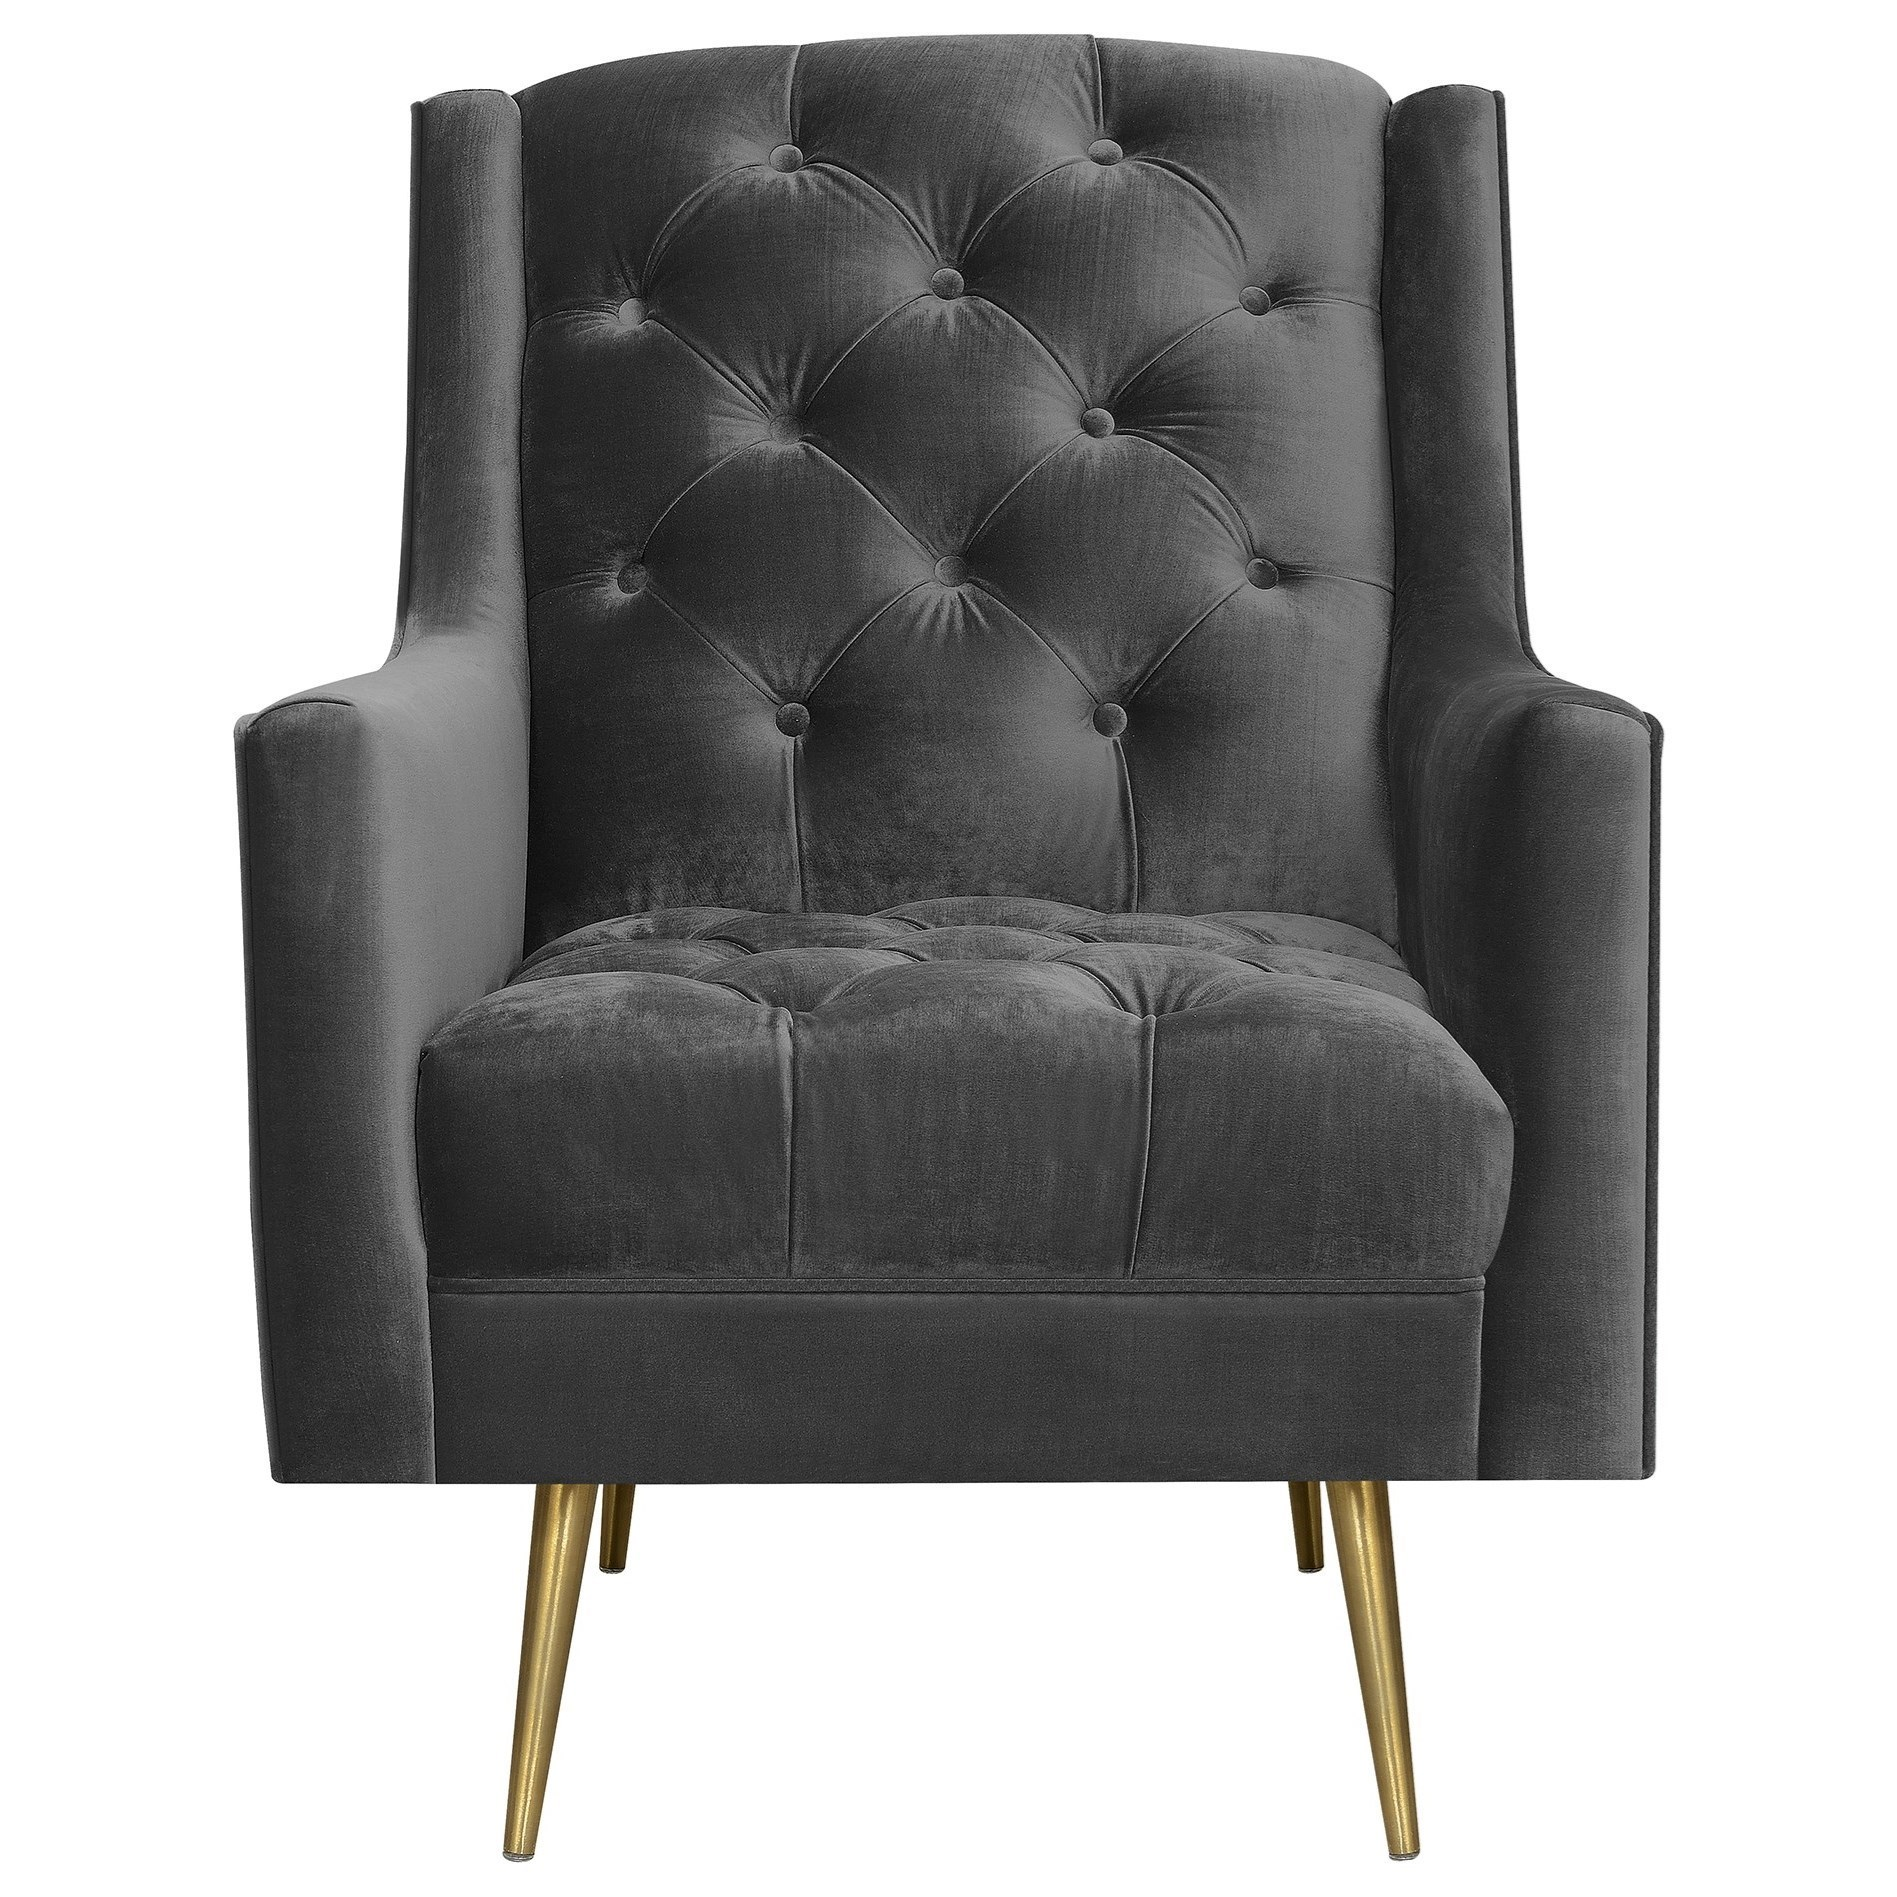 Picture of: Elements Bryan Contemporary Button Tufted Accent Chair With Gold Legs Royal Furniture Upholstered Chairs